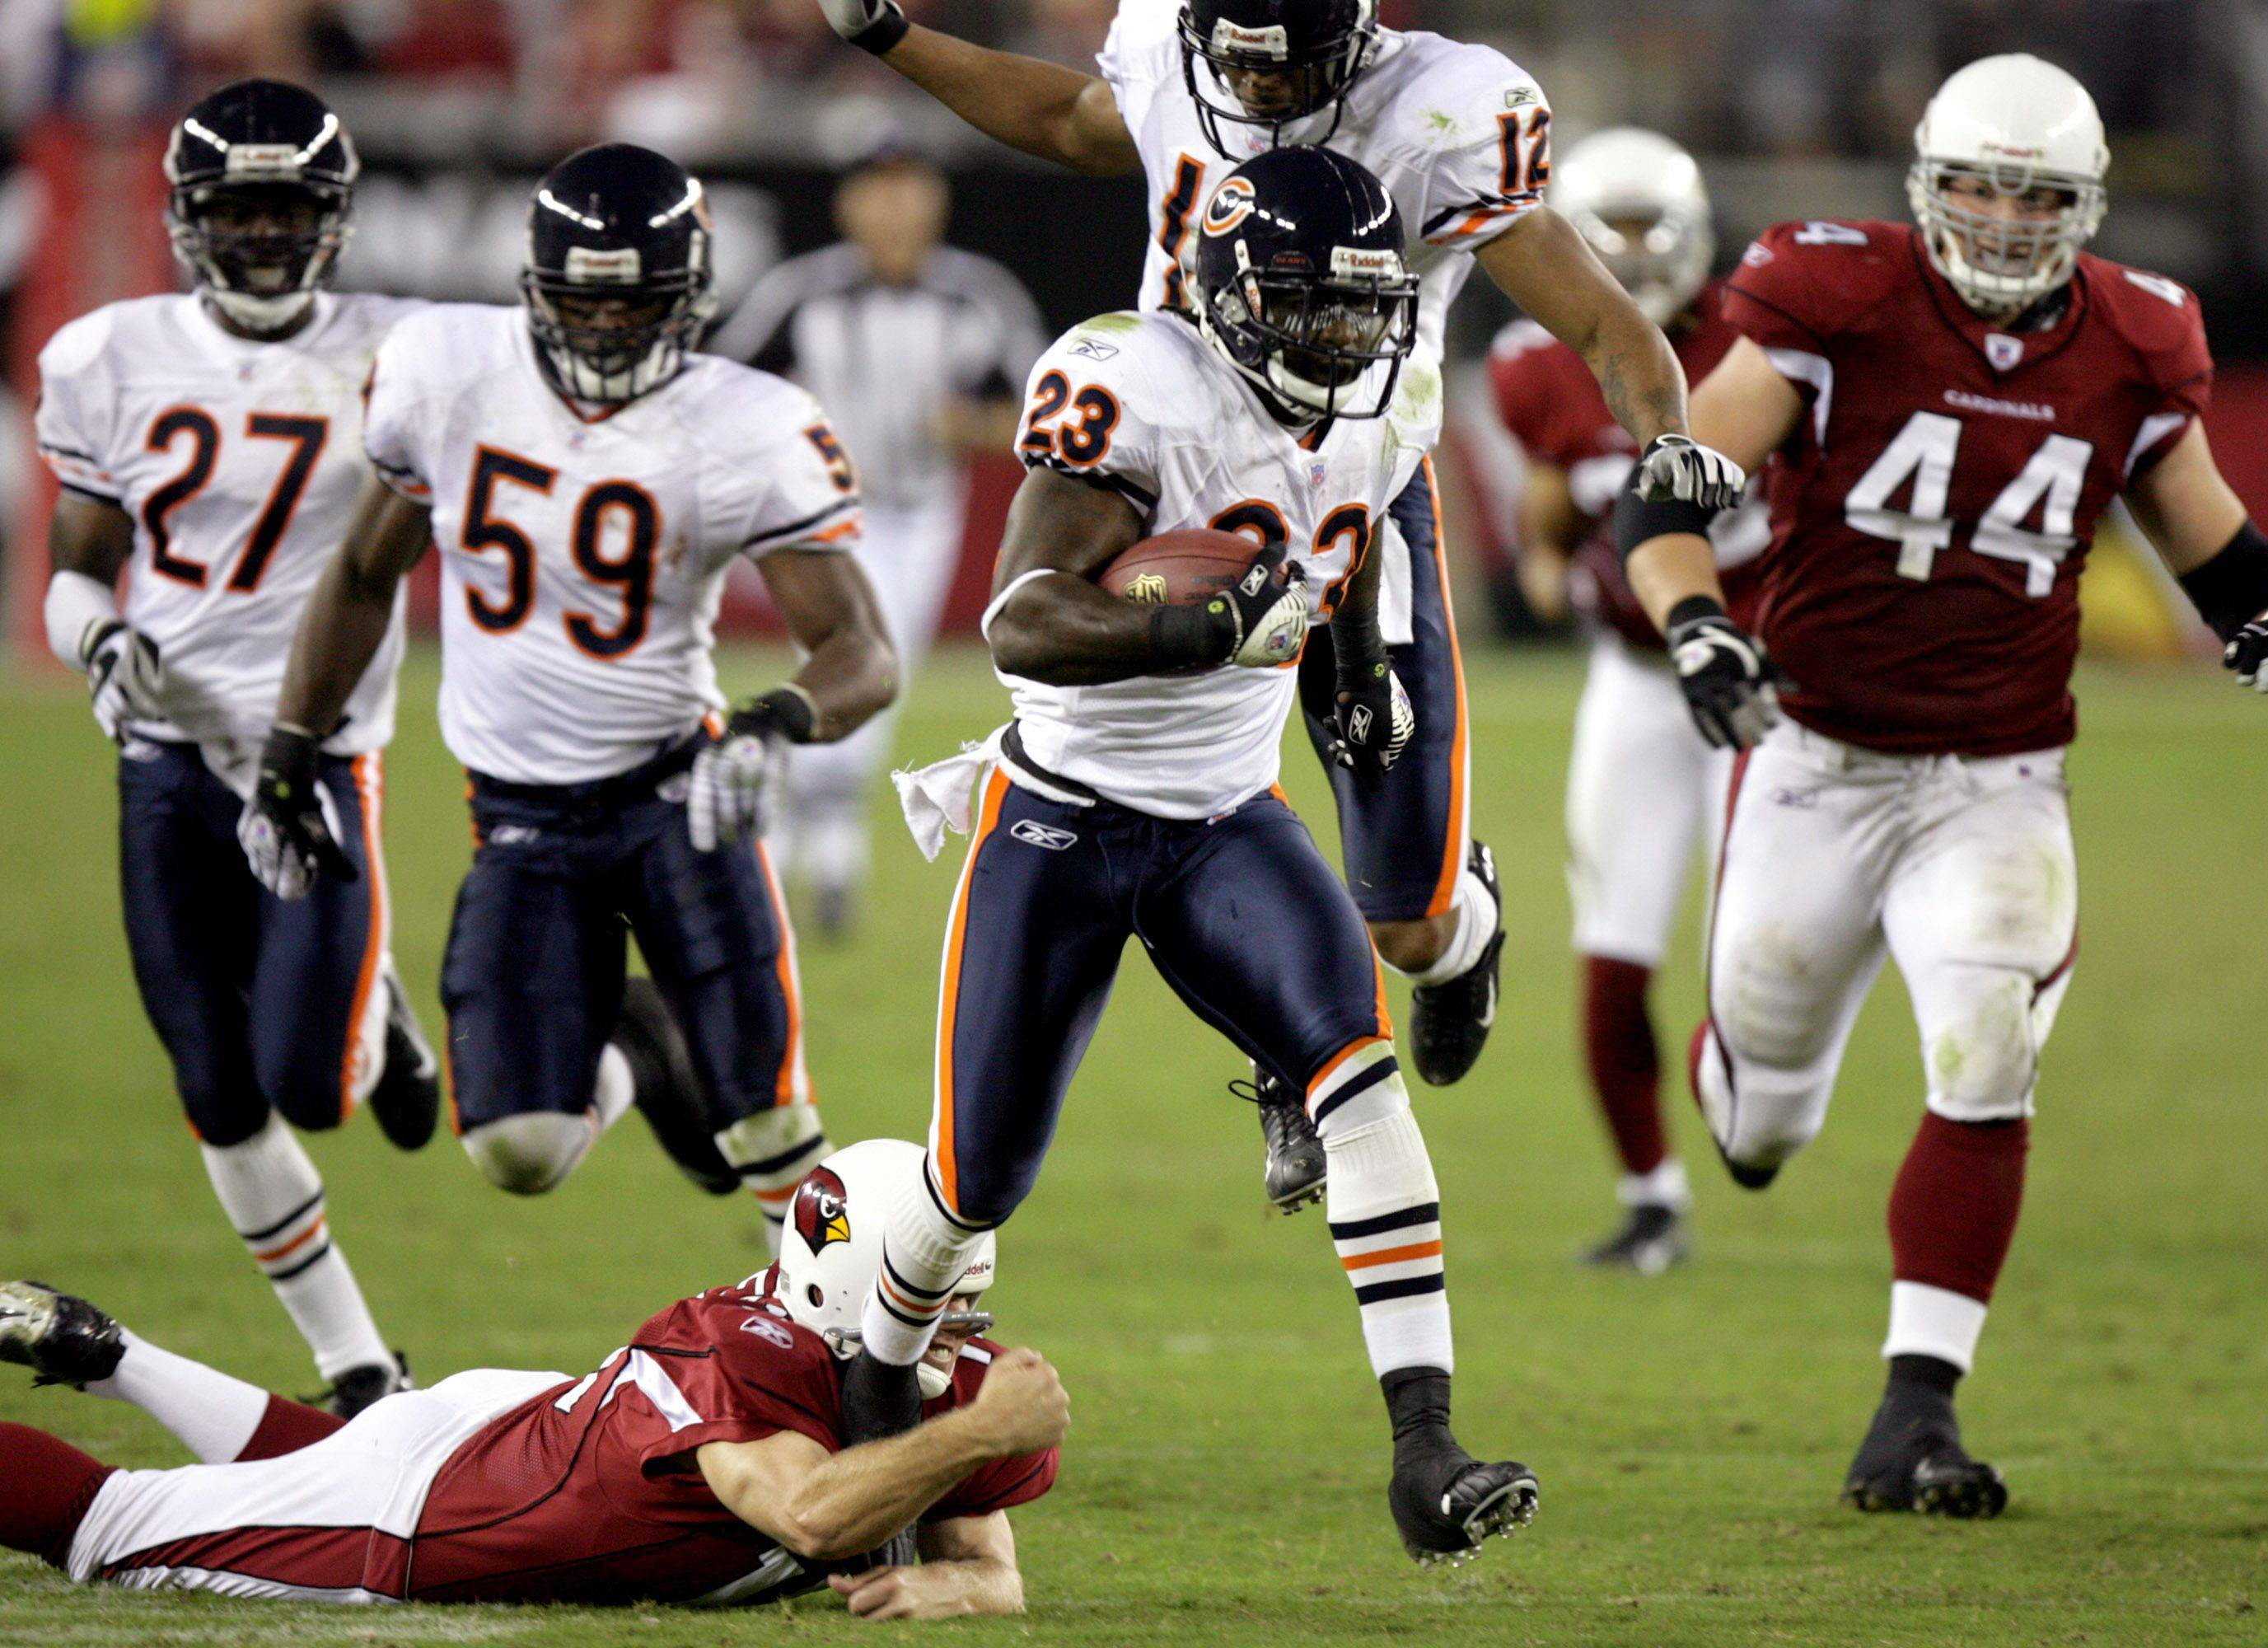 No. 2: Devin Hester breaks away from a tackle attempt by Arizona Cardinals punter Scott Player for an 83-yard punt return for a touchdown on Oct. 16, 2006.